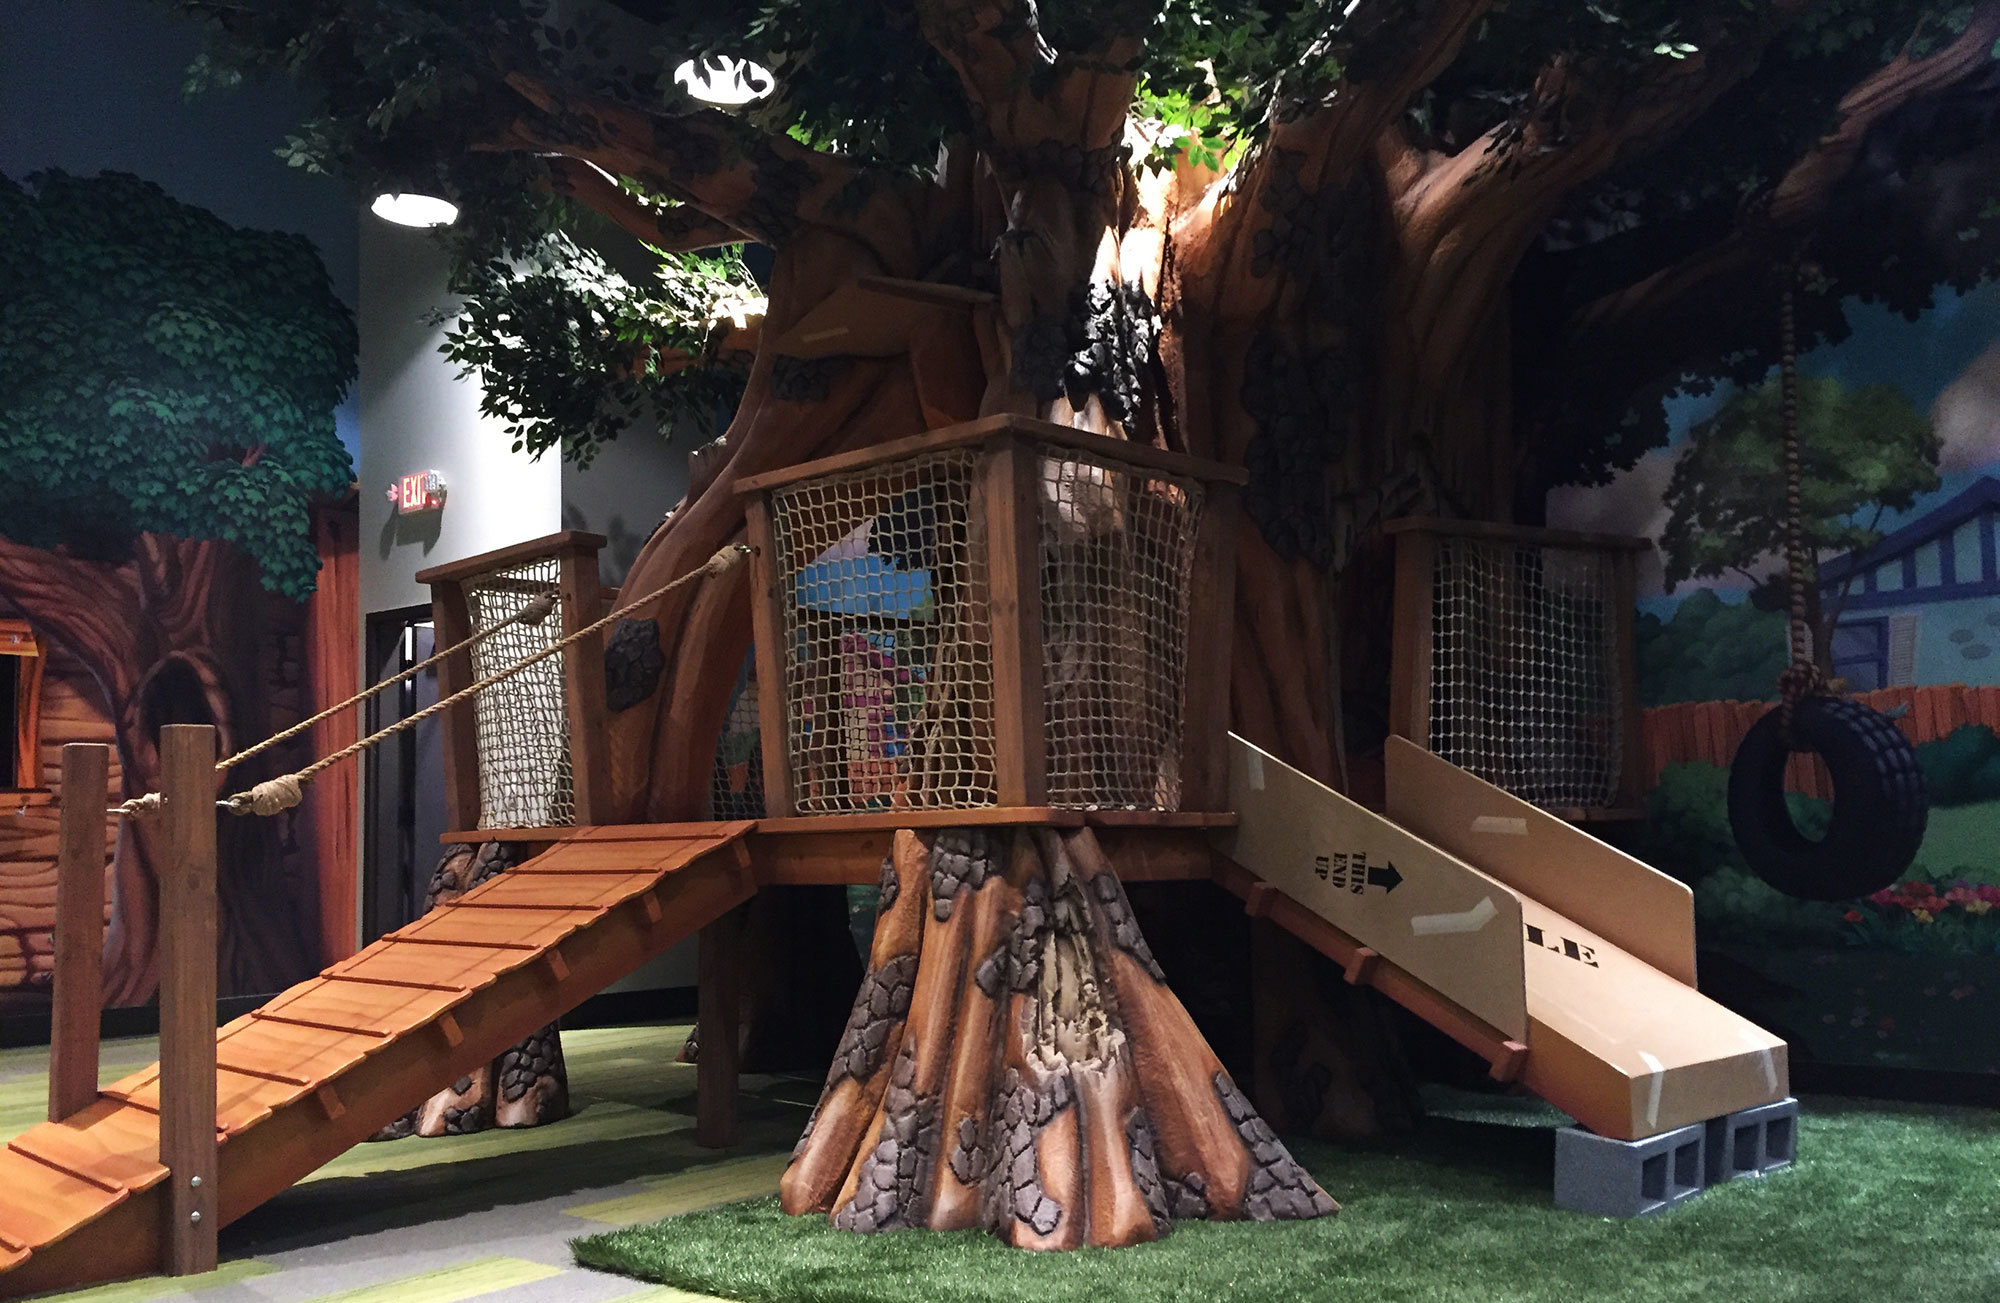 3D Treehouse Slide and Play Area at Christ Fellowship Church